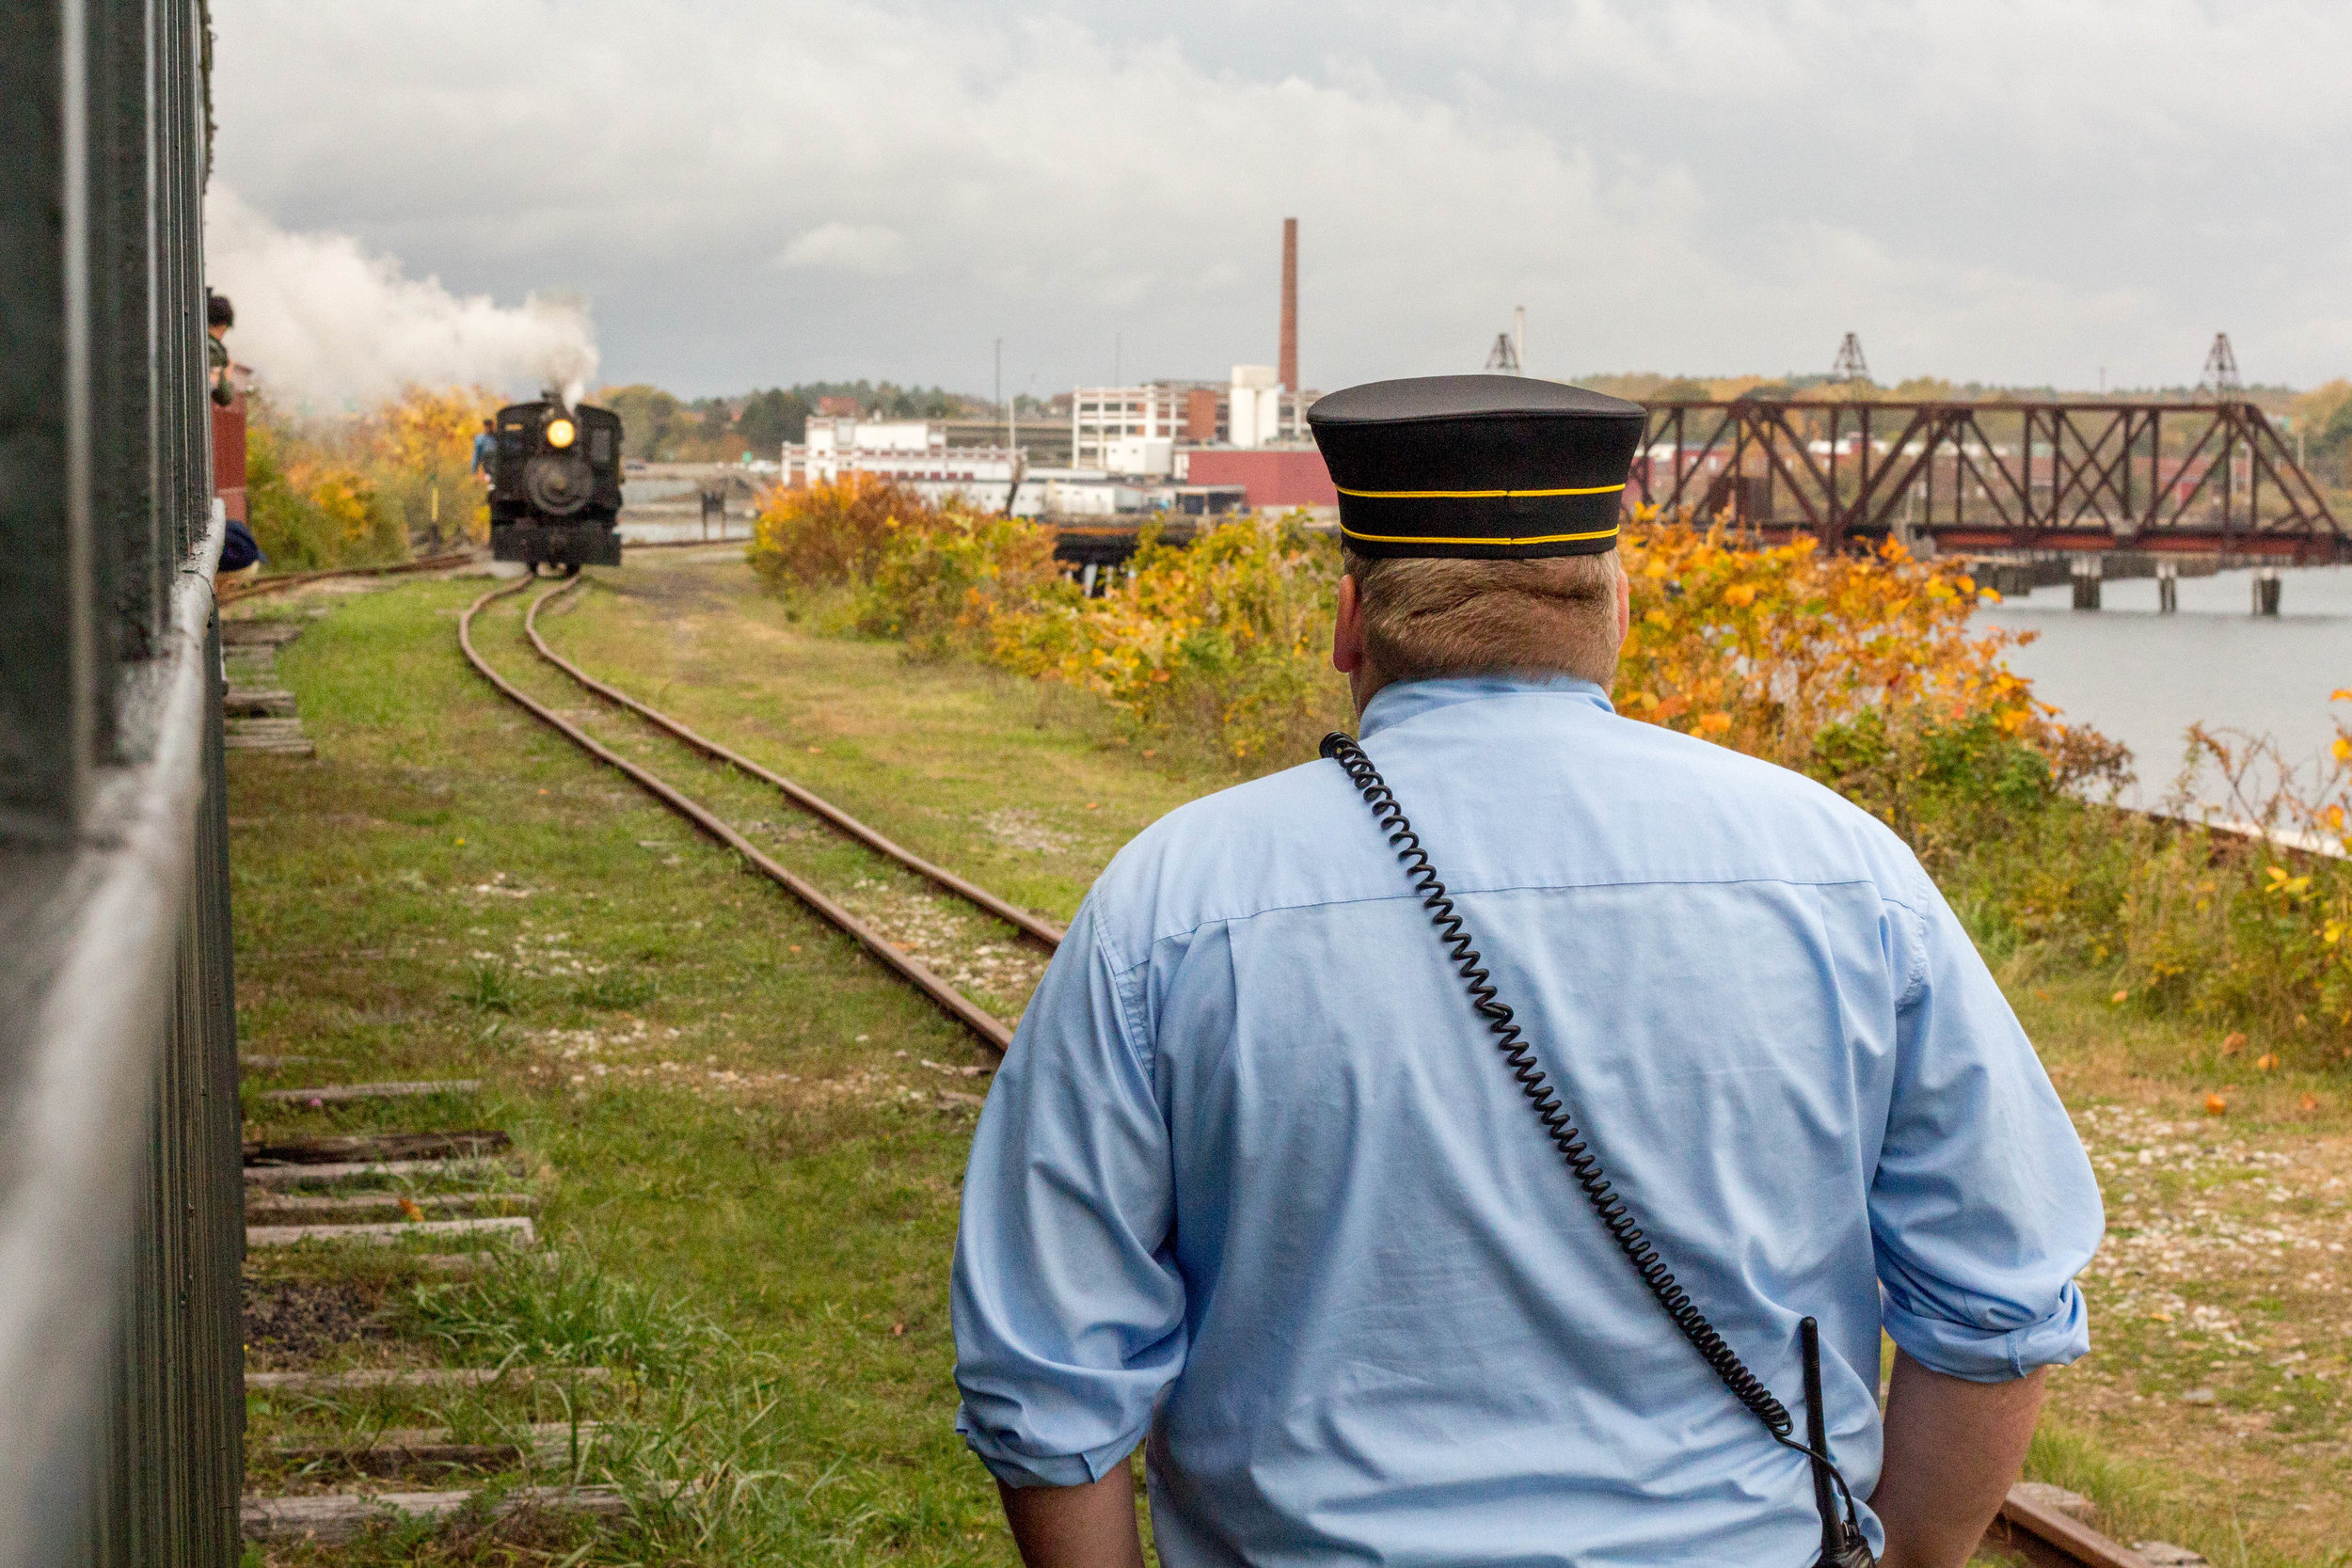 Passengers and Volunteers take the last ride of the 2017 season on the Maine Narrow Gauge Railroad's train in Portland, Maine on October 29, 2017.